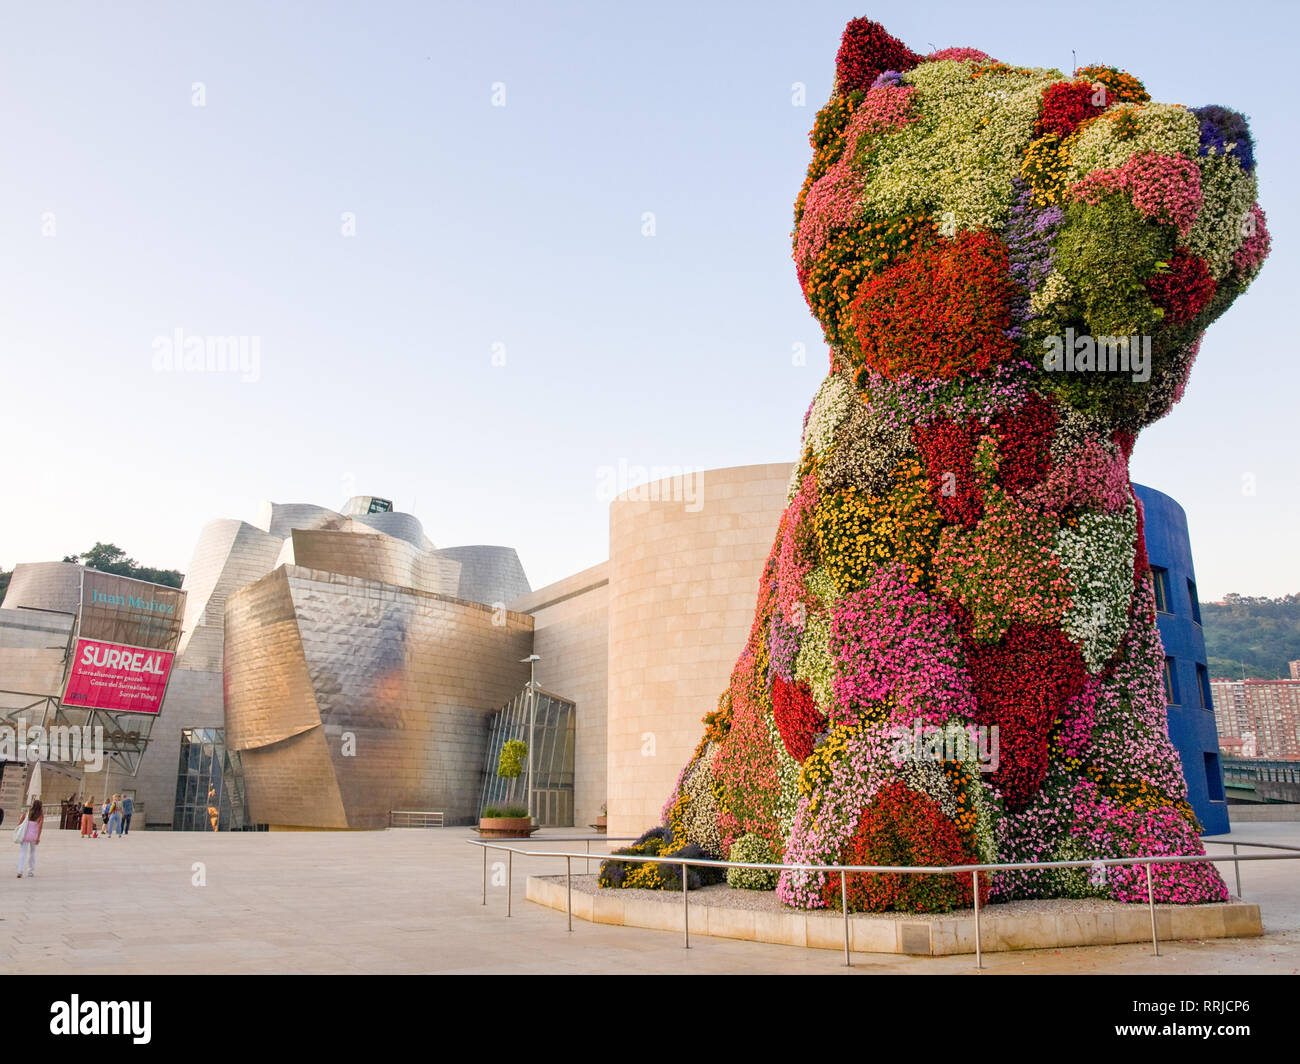 Puppy A Floral Topiary Sculpture By Jeff Koons Stands Guard In Front Of The Guggenheim Museum Bilbao In Bilbao Spain Stock Photo Alamy